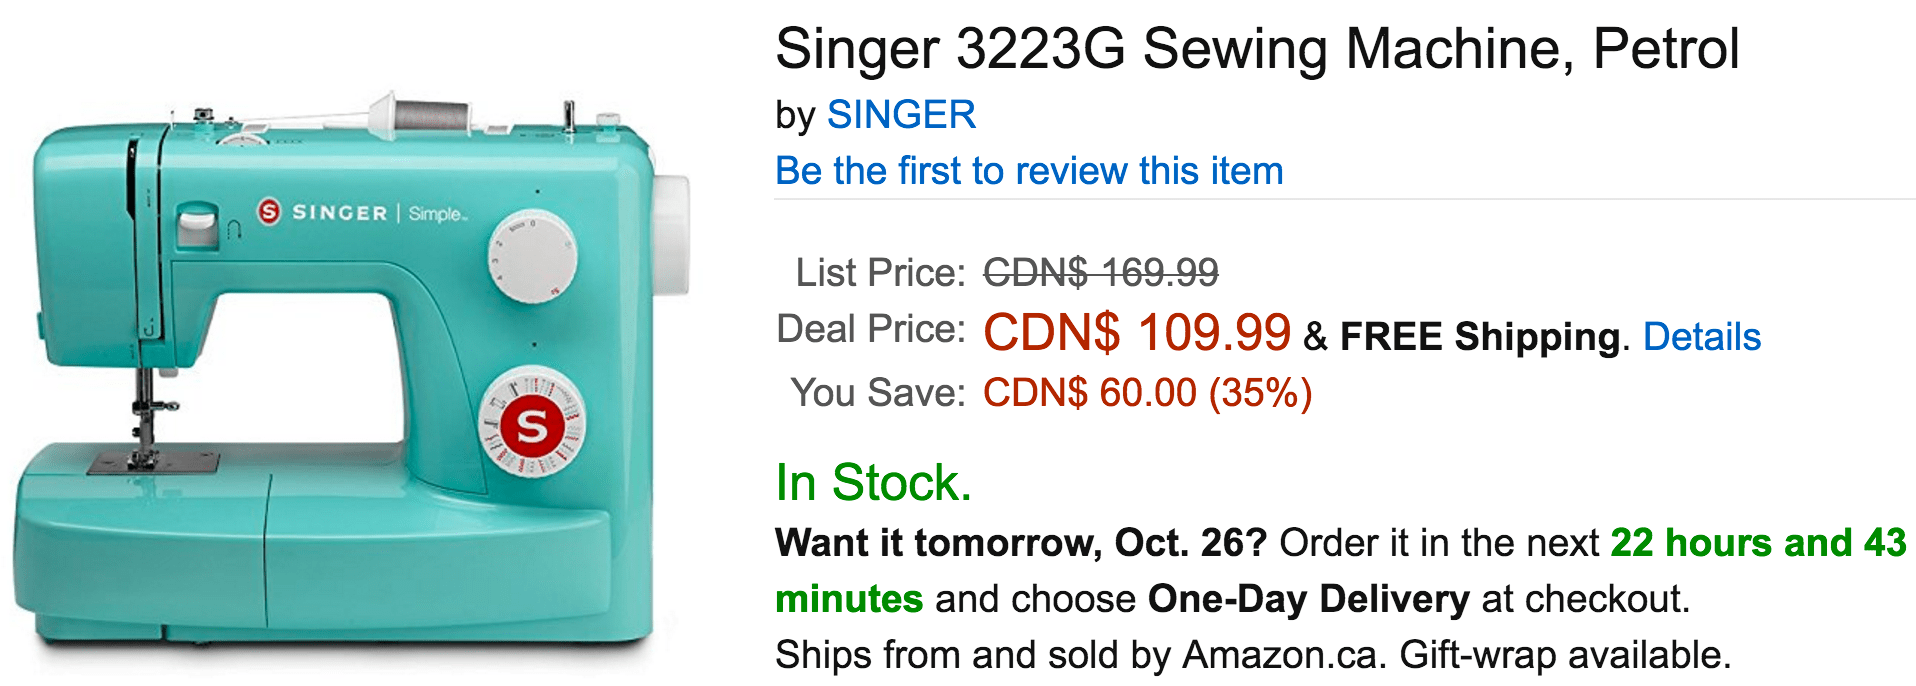 Amazon Canada Deals Of The Day: Save 35% On Singer Sewing Machine Petrol, 37% On LEGO Creator Ocean Explorer Building Kit & More Deals